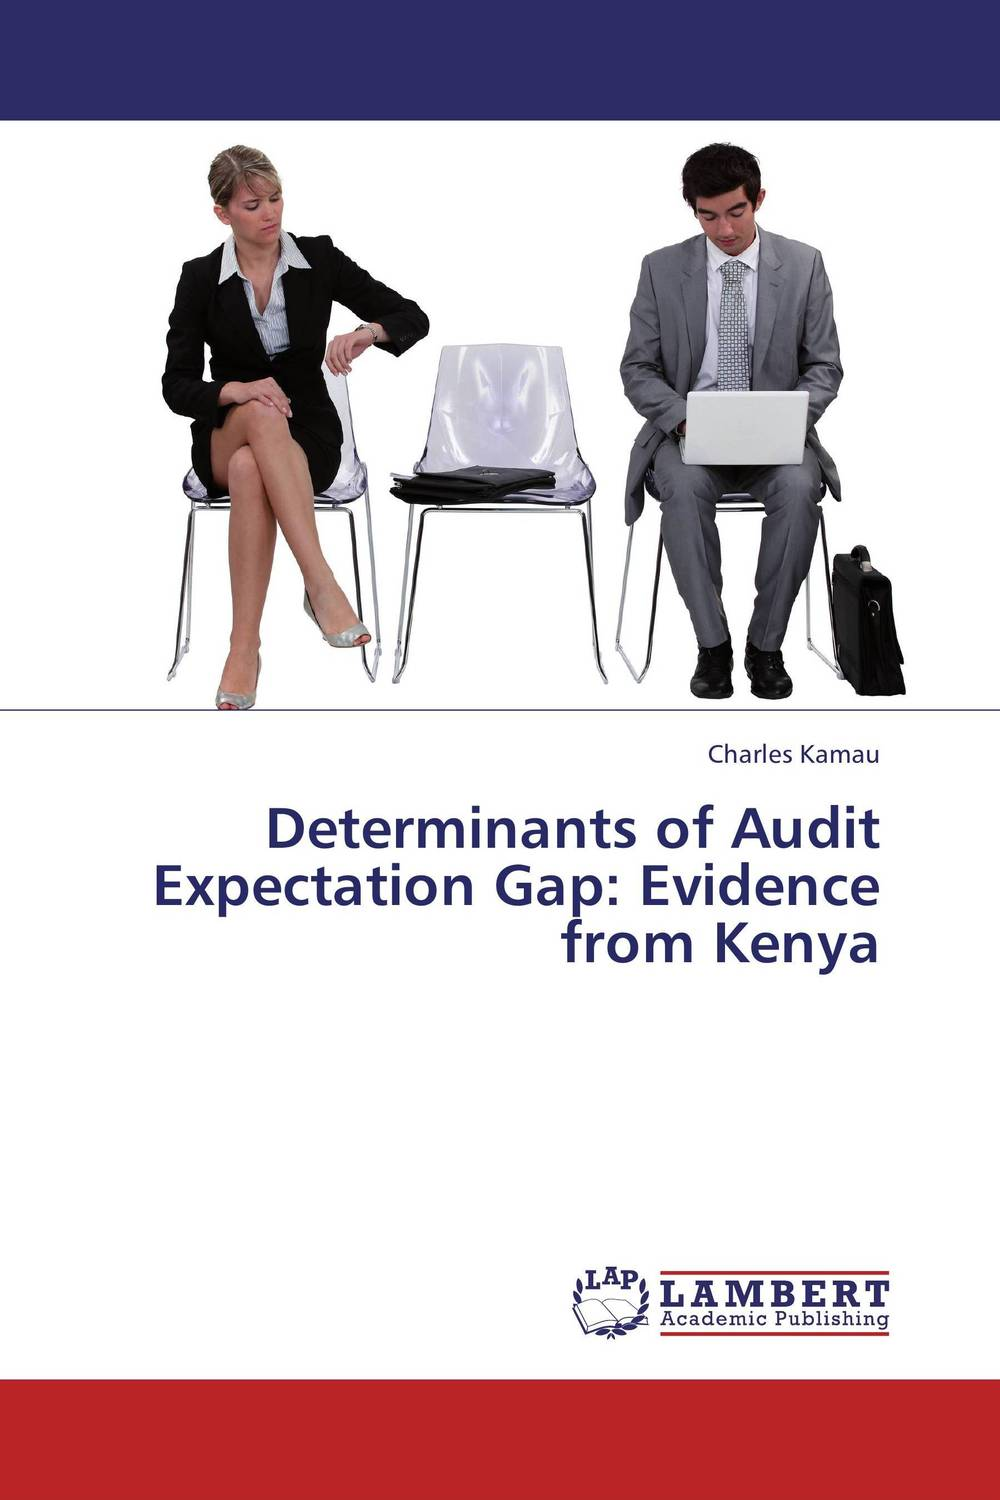 Determinants of Audit Expectation Gap: Evidence from Kenya